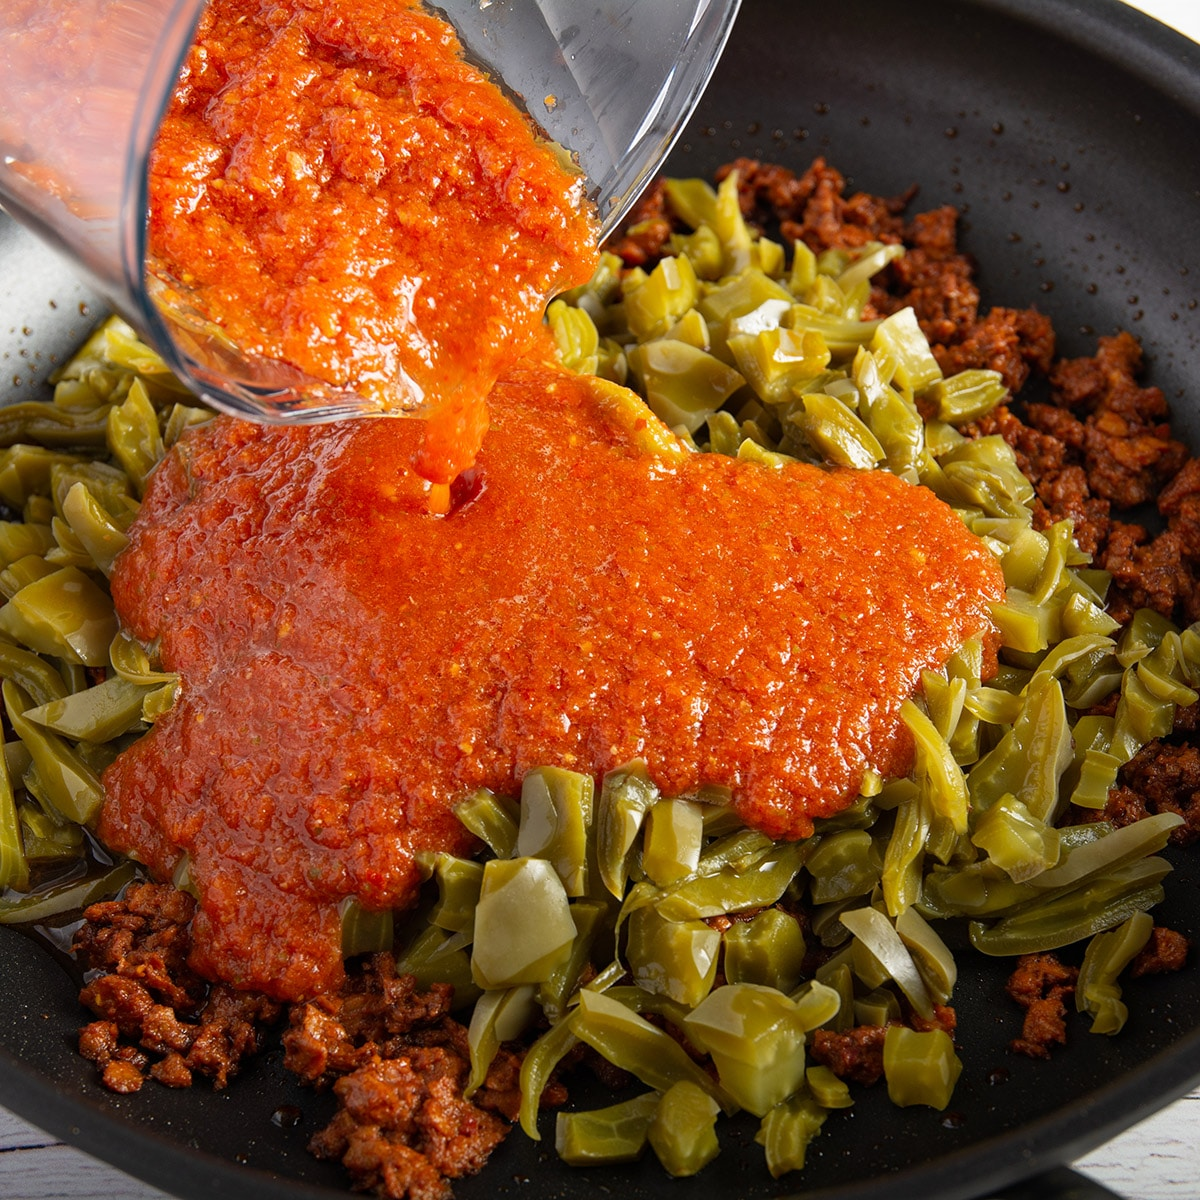 Pouring salsa into a pan with the chorizo and nopales